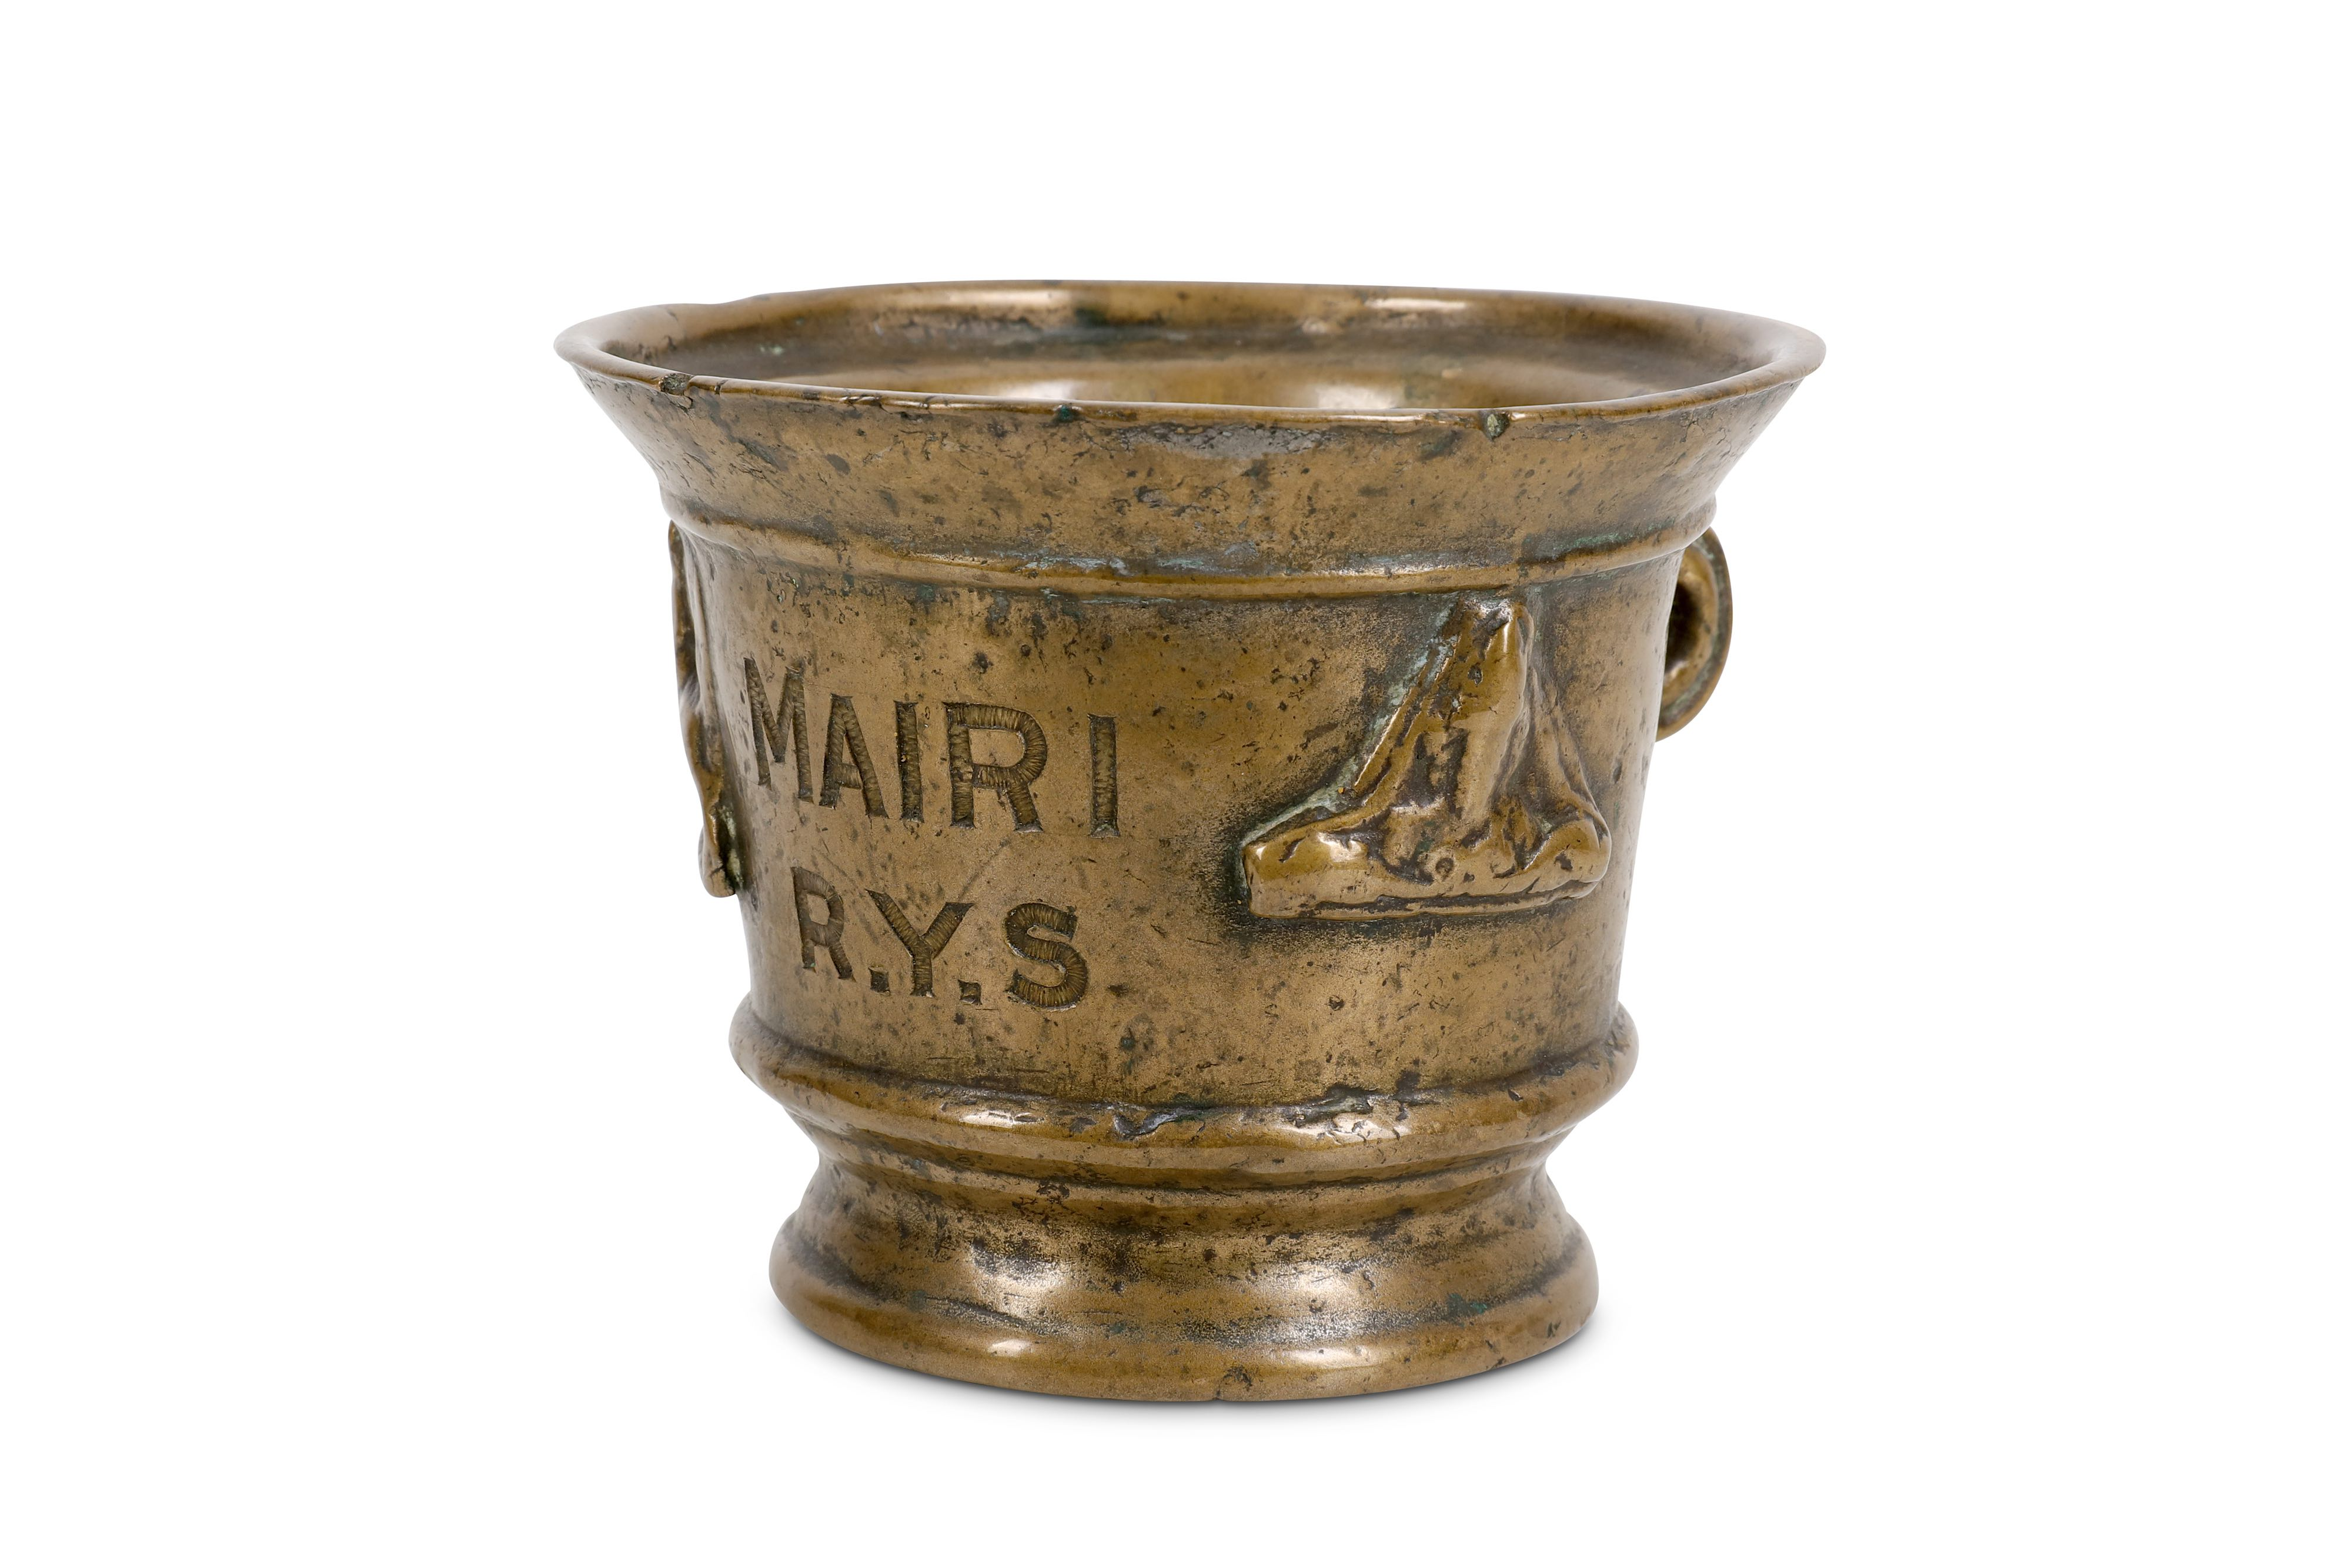 AN EARLY BRONZE MORTAR, LATER ENGRAVED 'MAIRI R.Y.S'